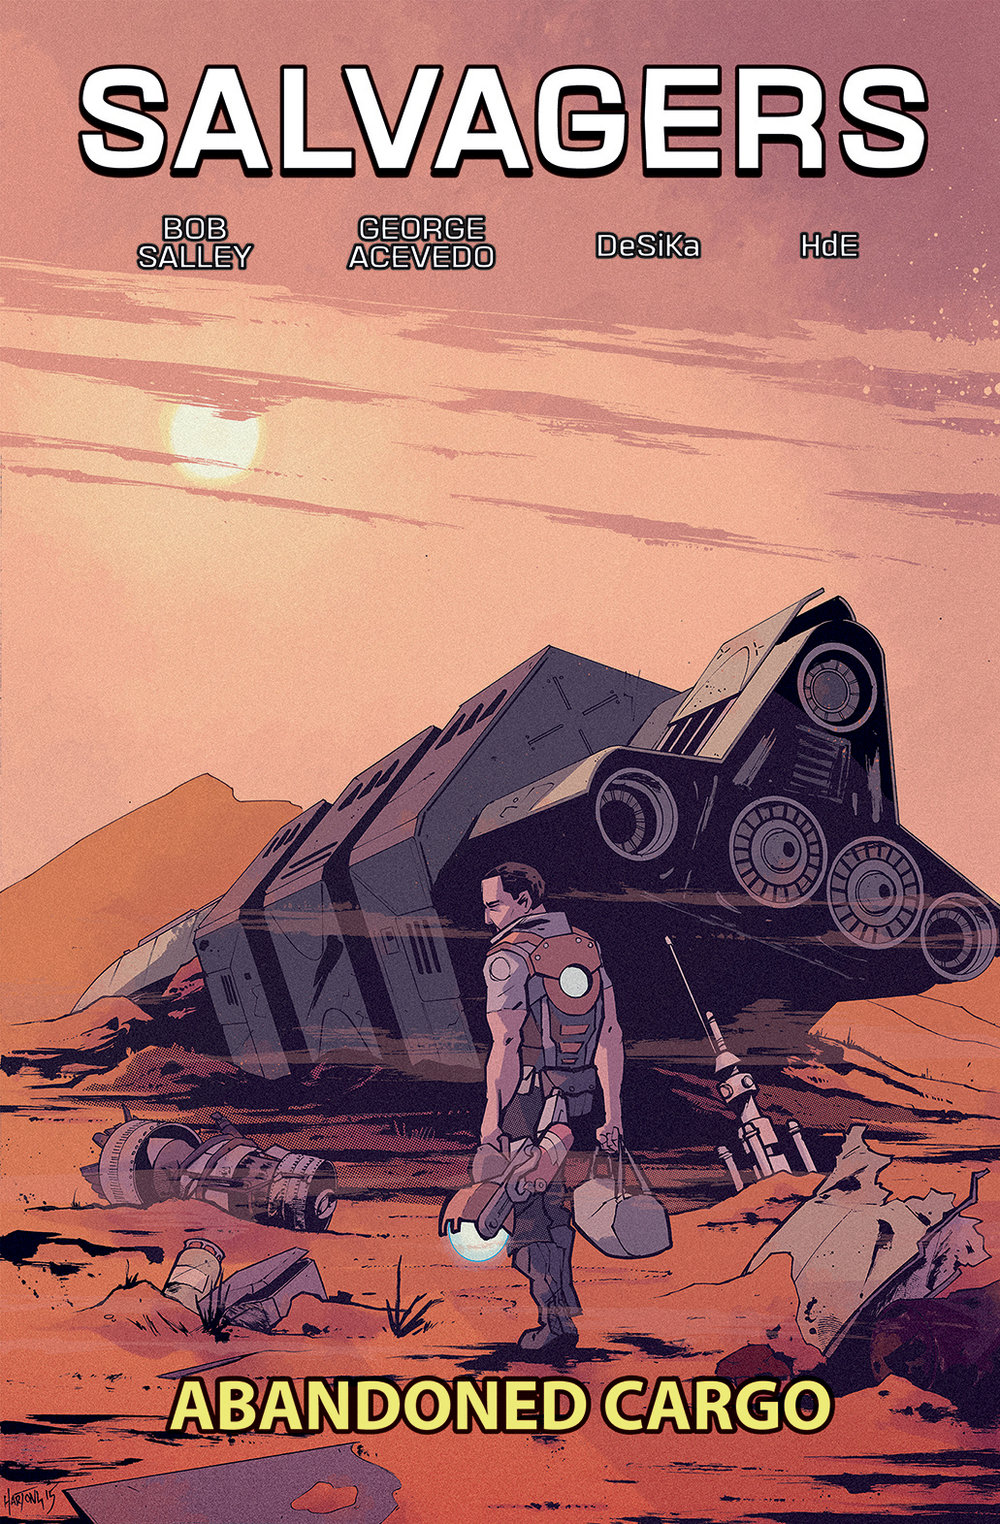 Diamond Code : FEB181782